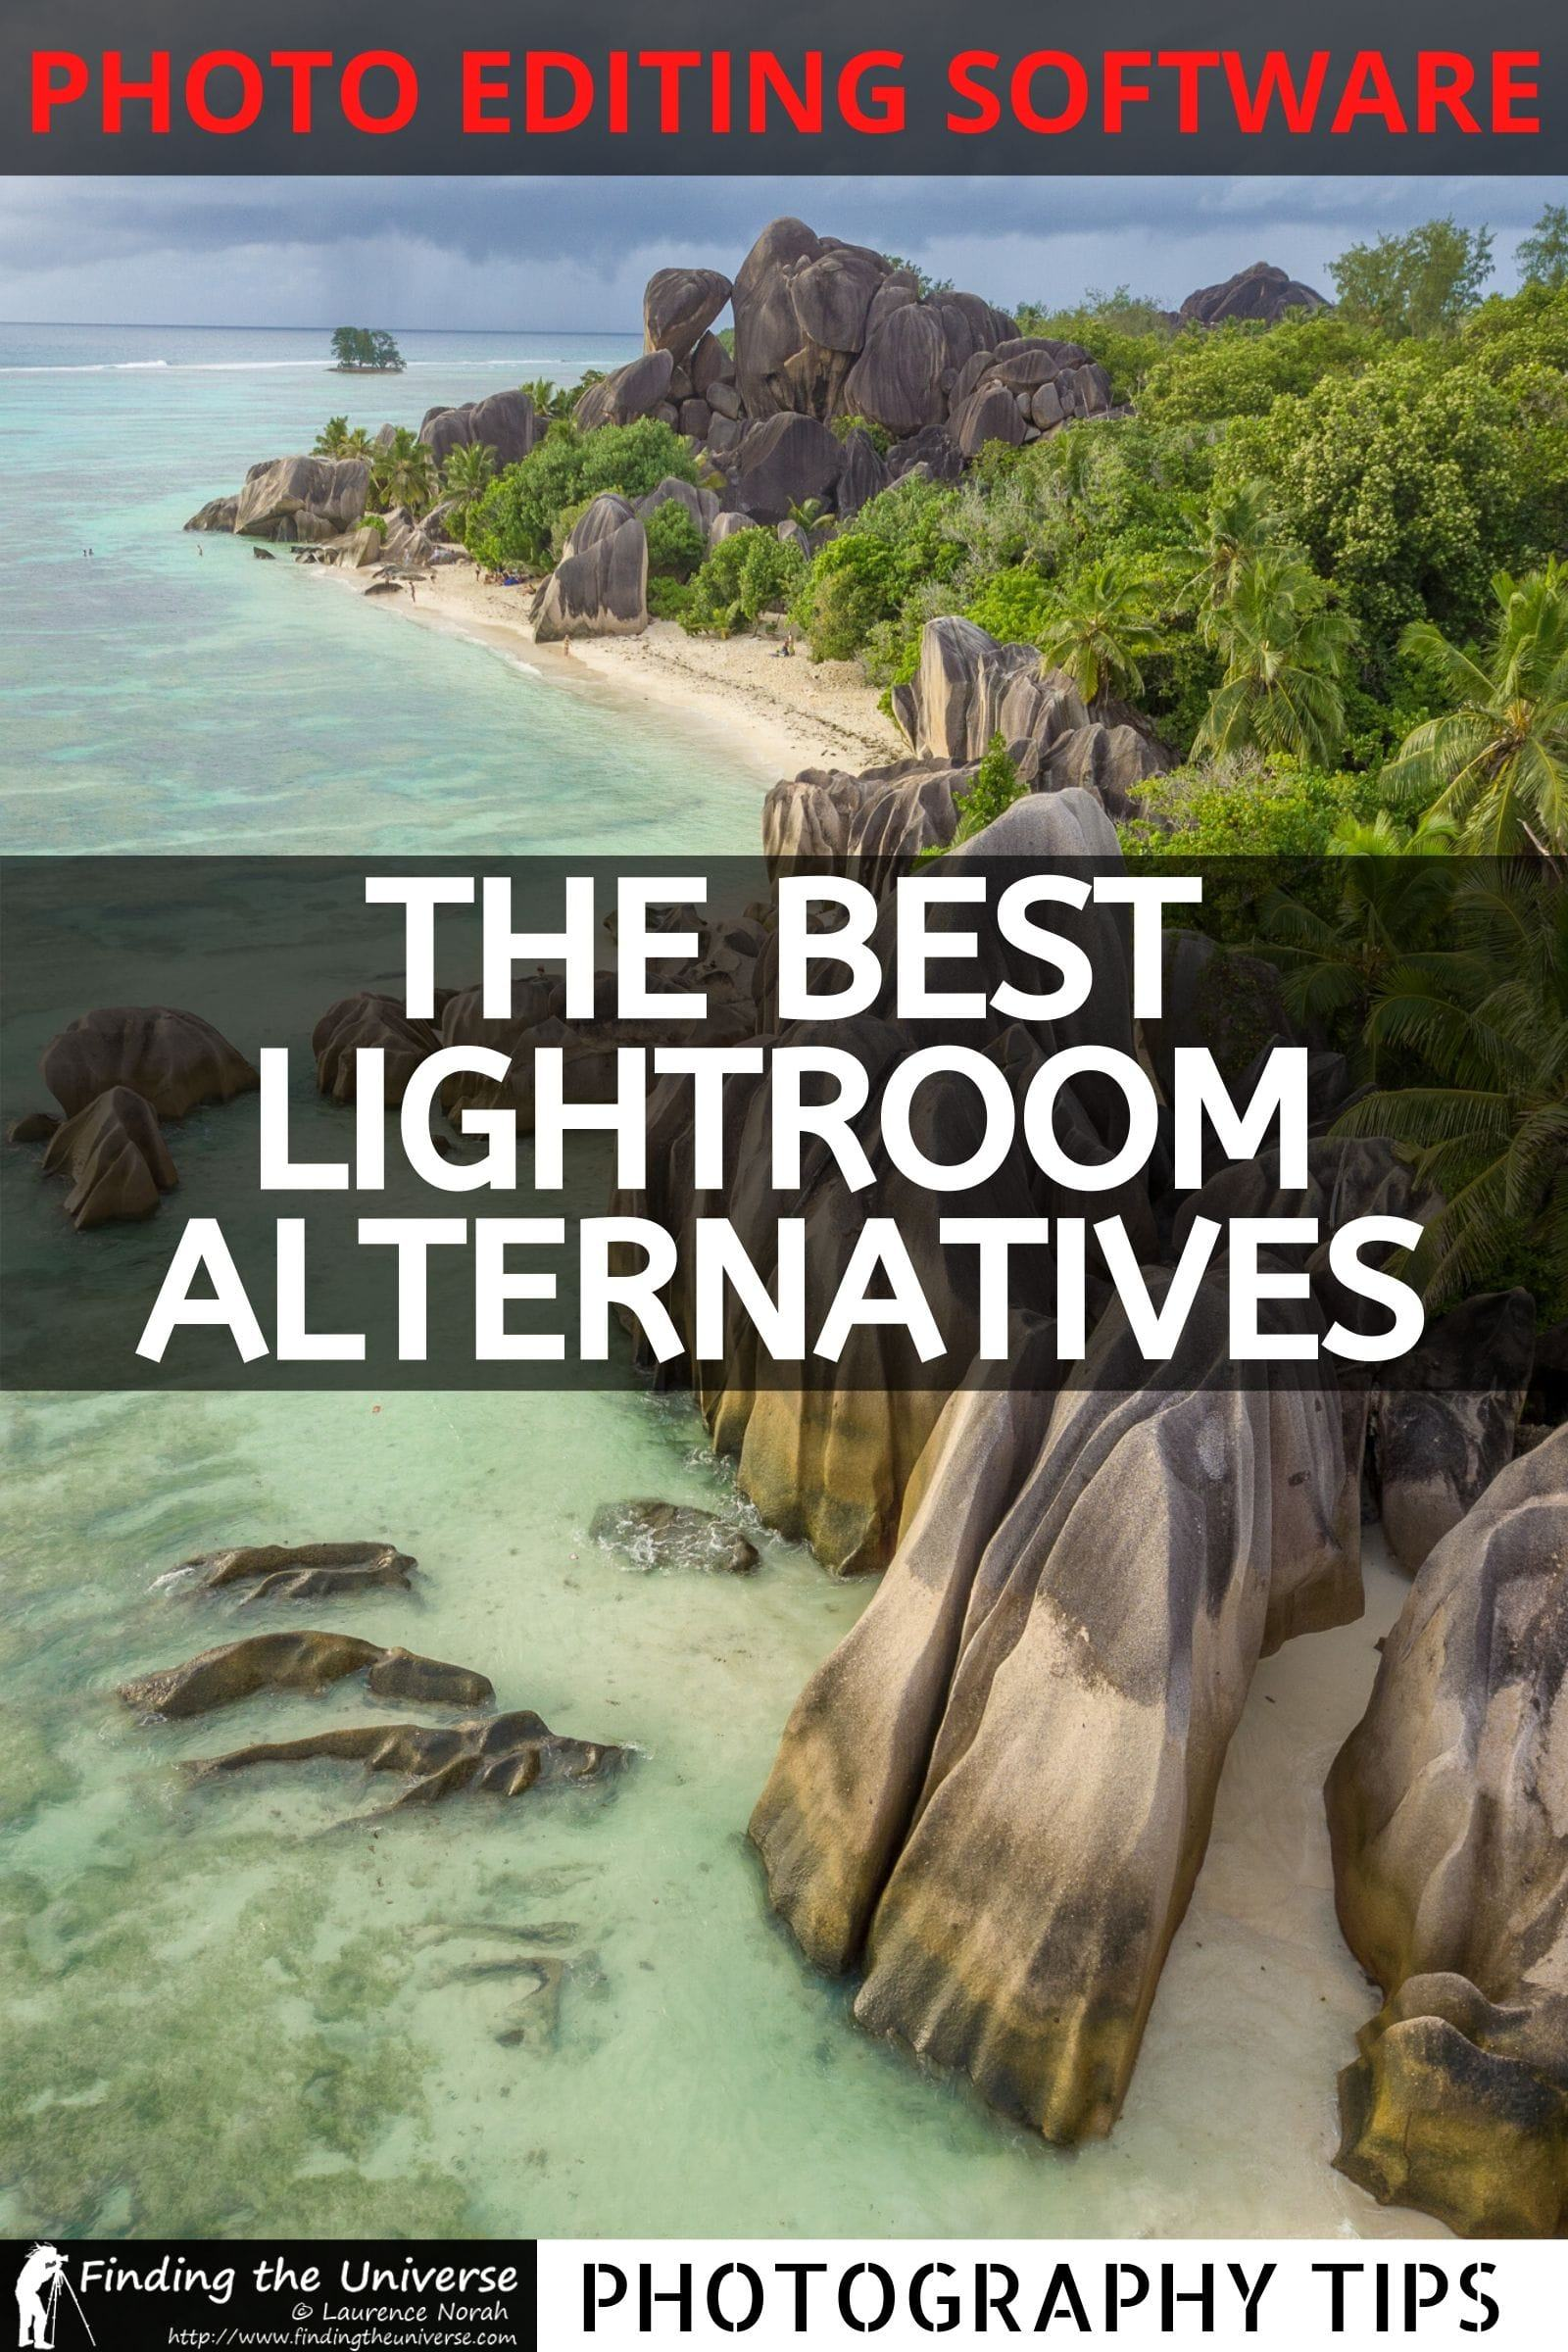 A detailed guide to the best Lightroom alternatives for photo editing and photo management. Has options for Windows, Mac & Linux, both free and paid.